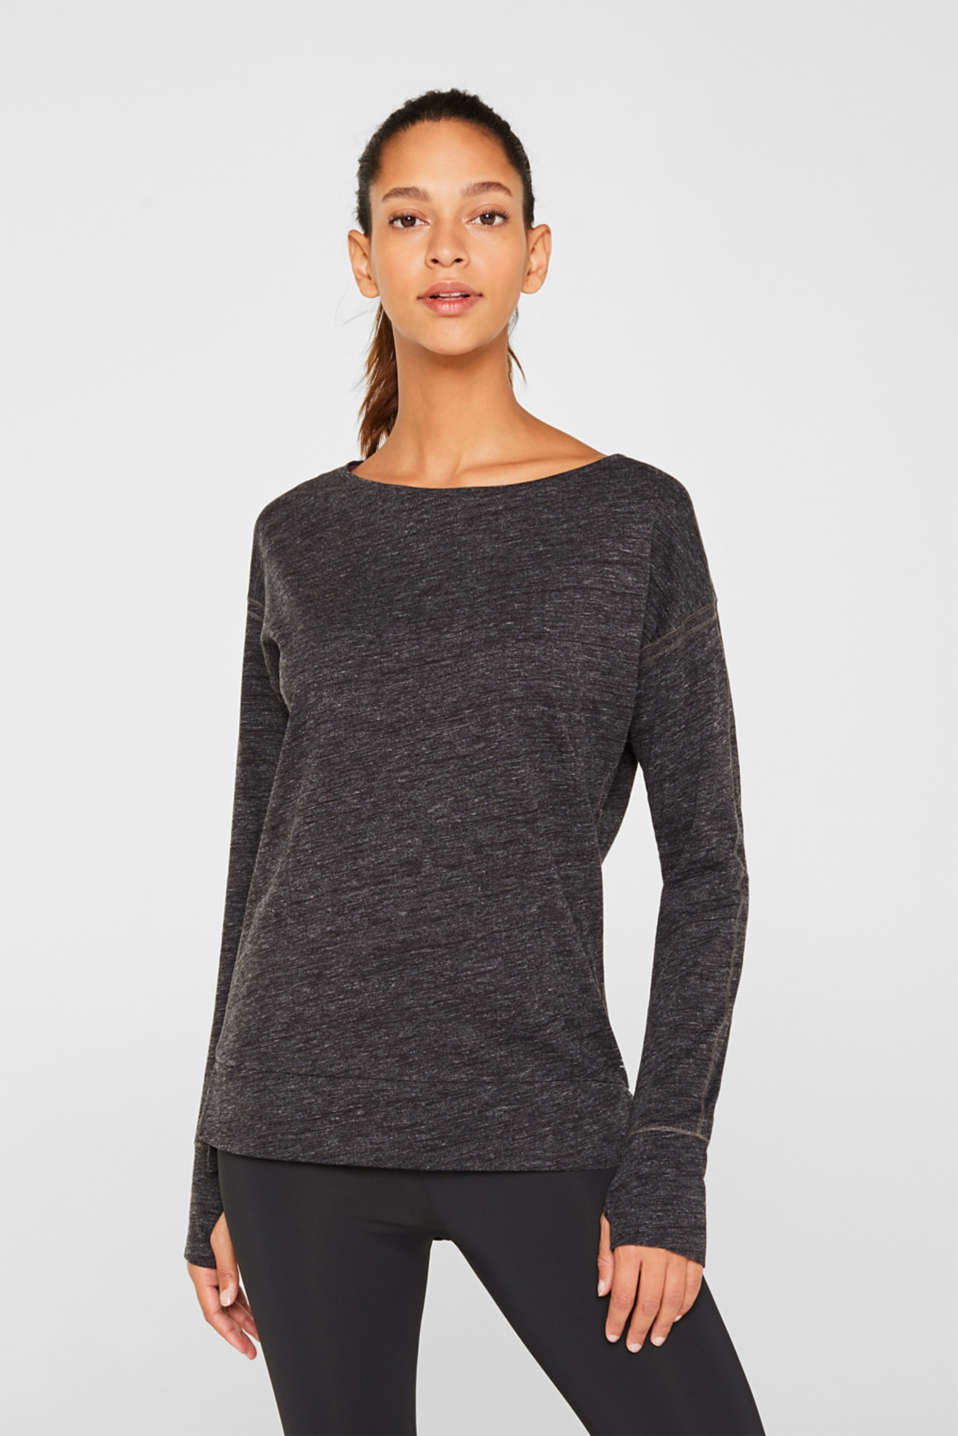 Esprit - Melange long sleeve top with decorative stitching